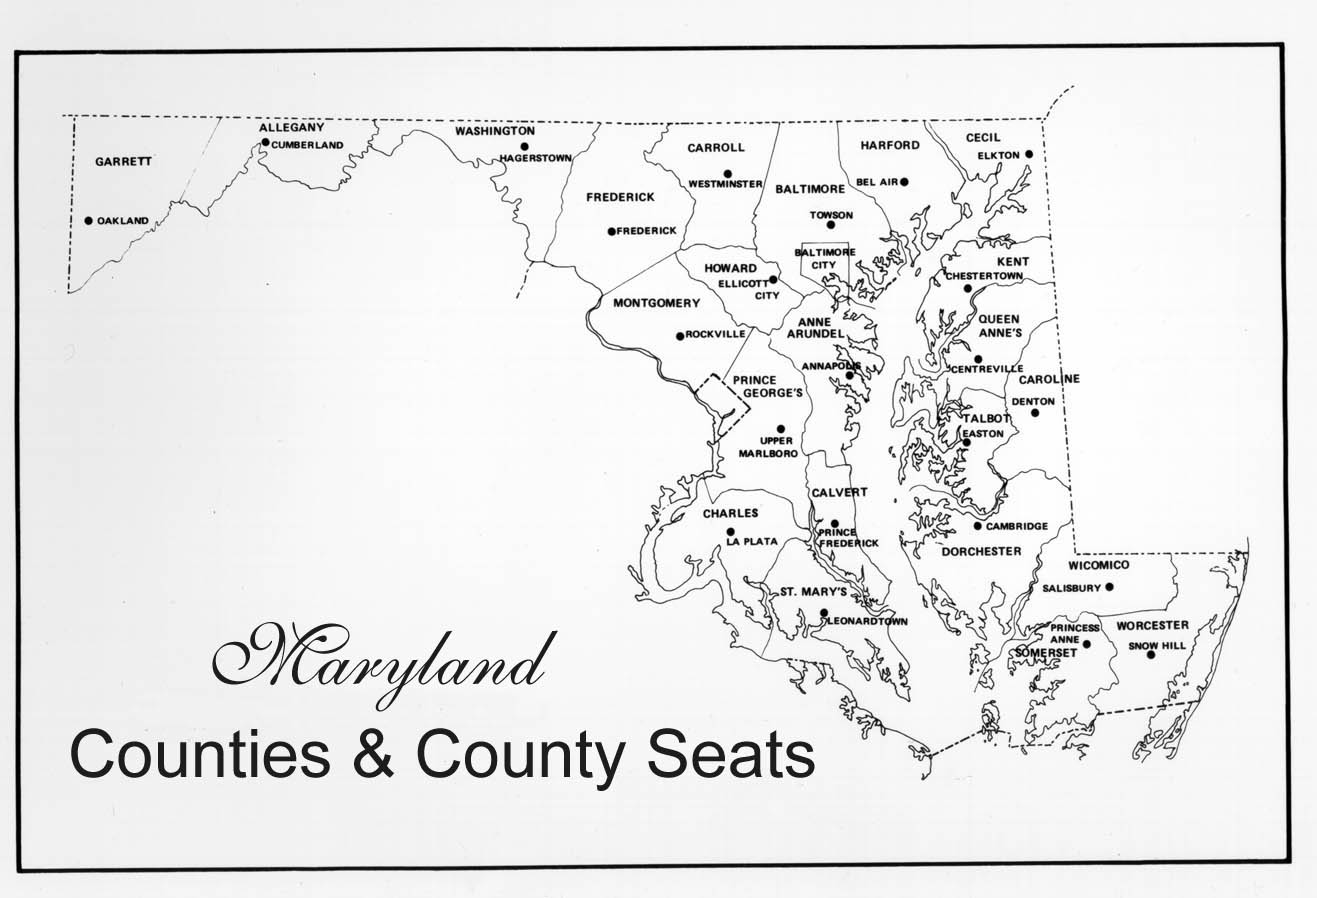 counties of maryland map Maryland Counties Map Counties County Seats counties of maryland map